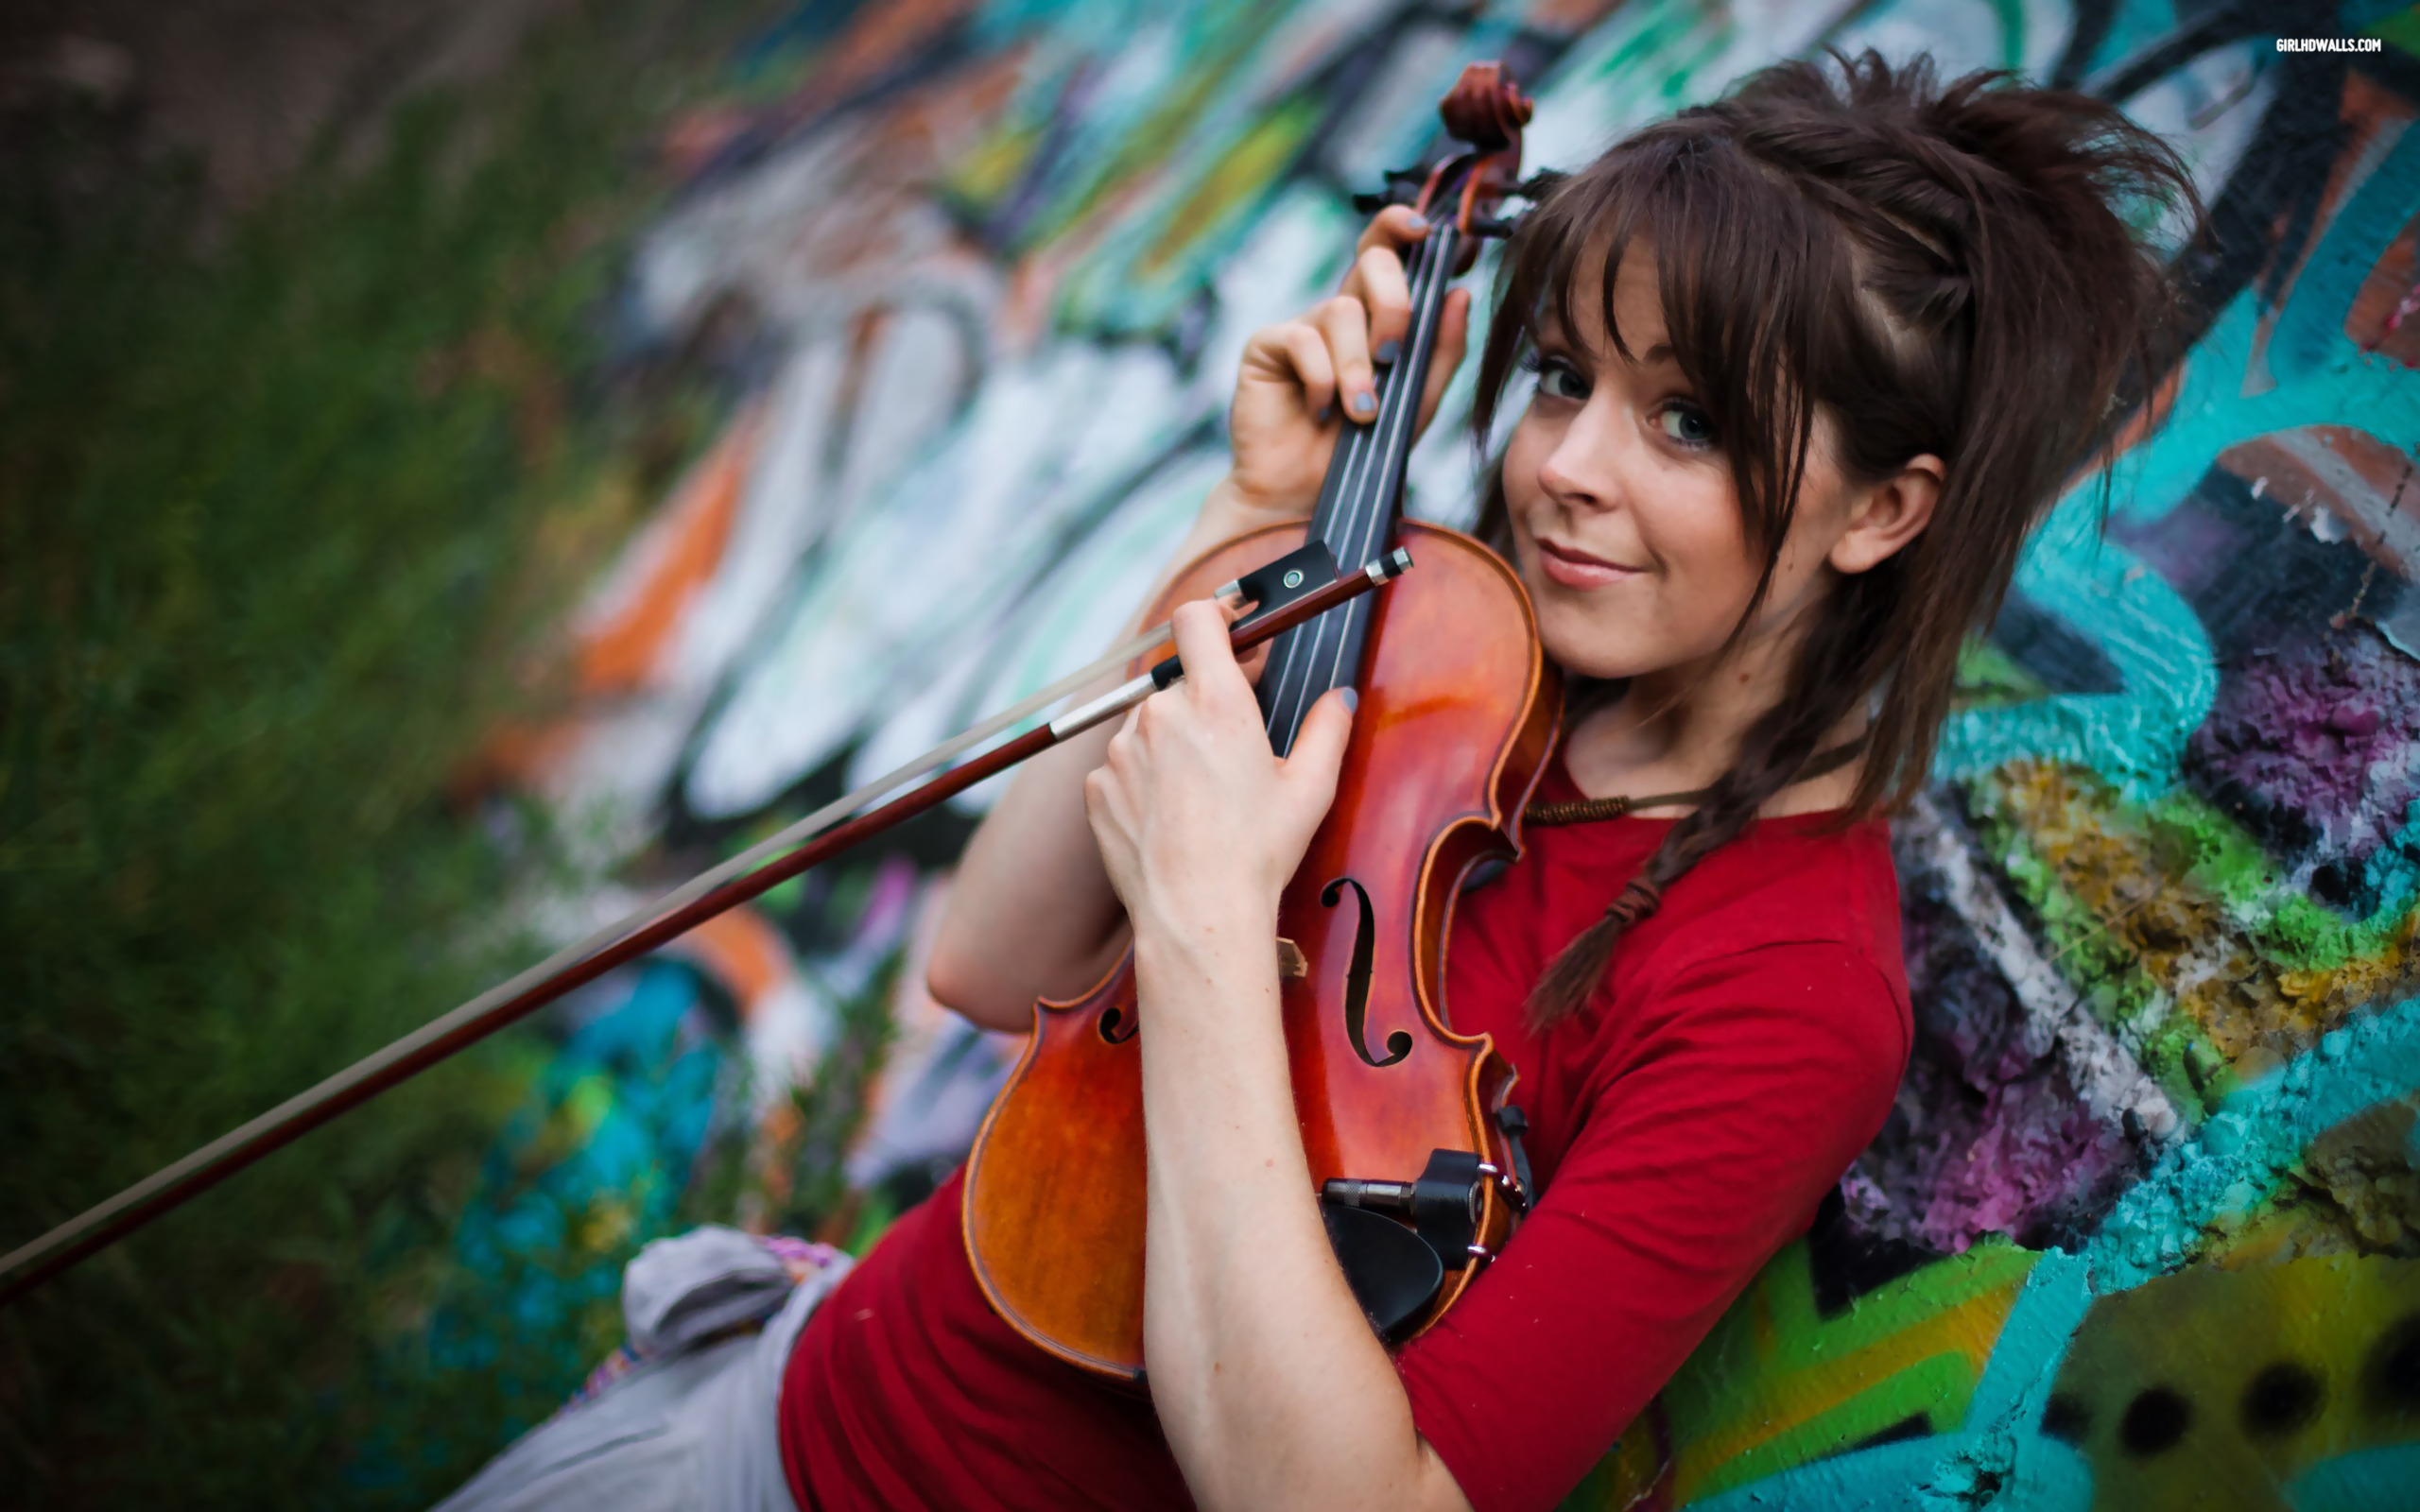 http://images6.fanpop.com/image/photos/33500000/Lindsey-lindsey-stirling-33527866-2560-1600.jpg